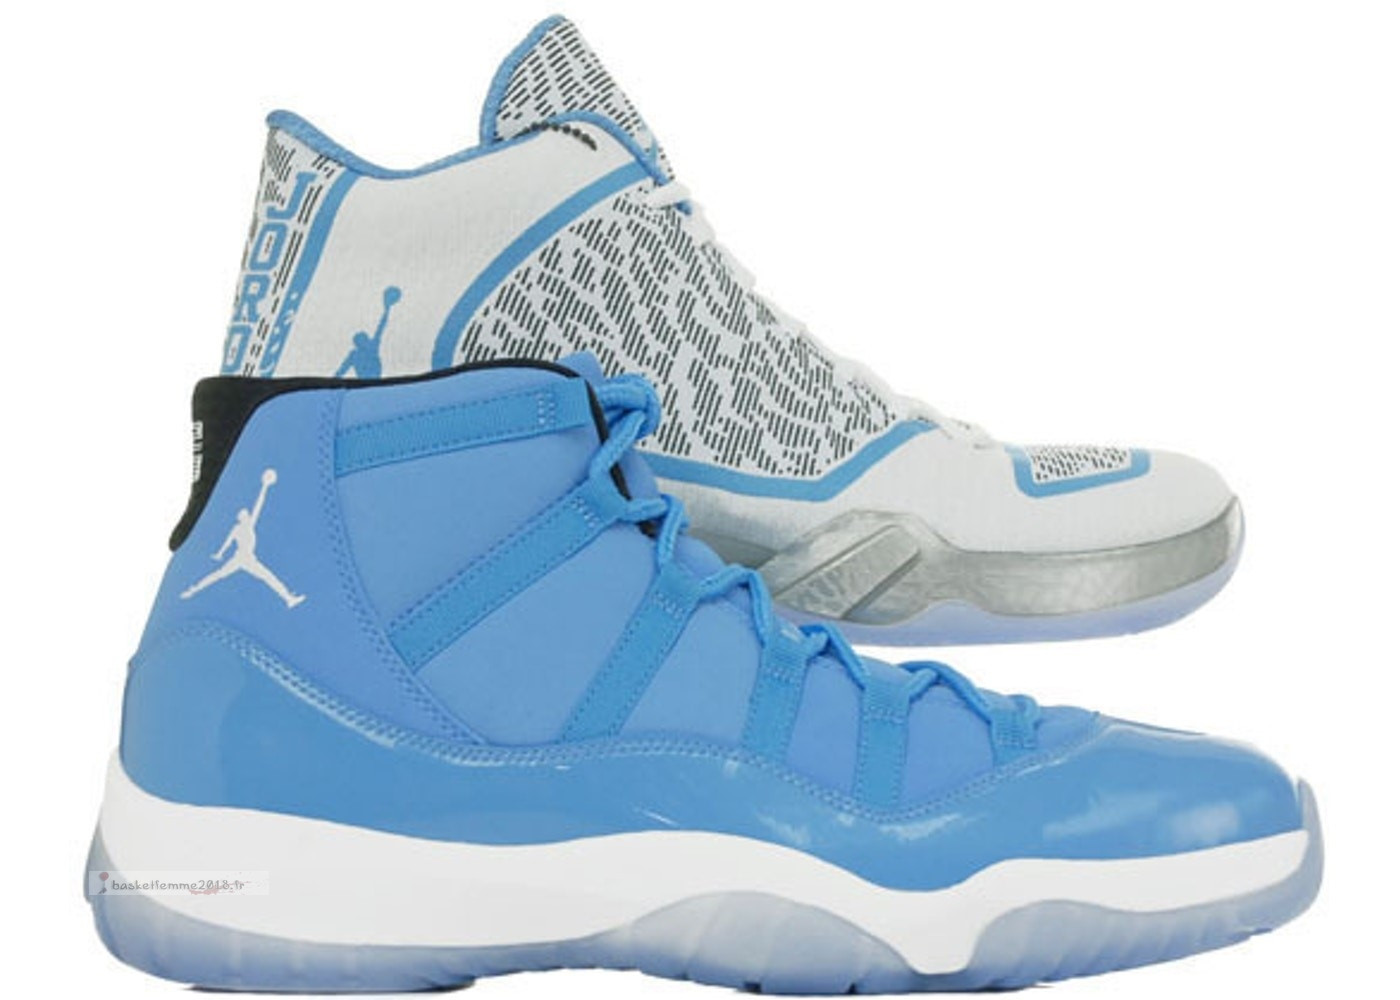 Air Jordan Ultimate Gift Of Flight Pack (11/29) Blanc Bleu (717602-900) Chaussure de Basket